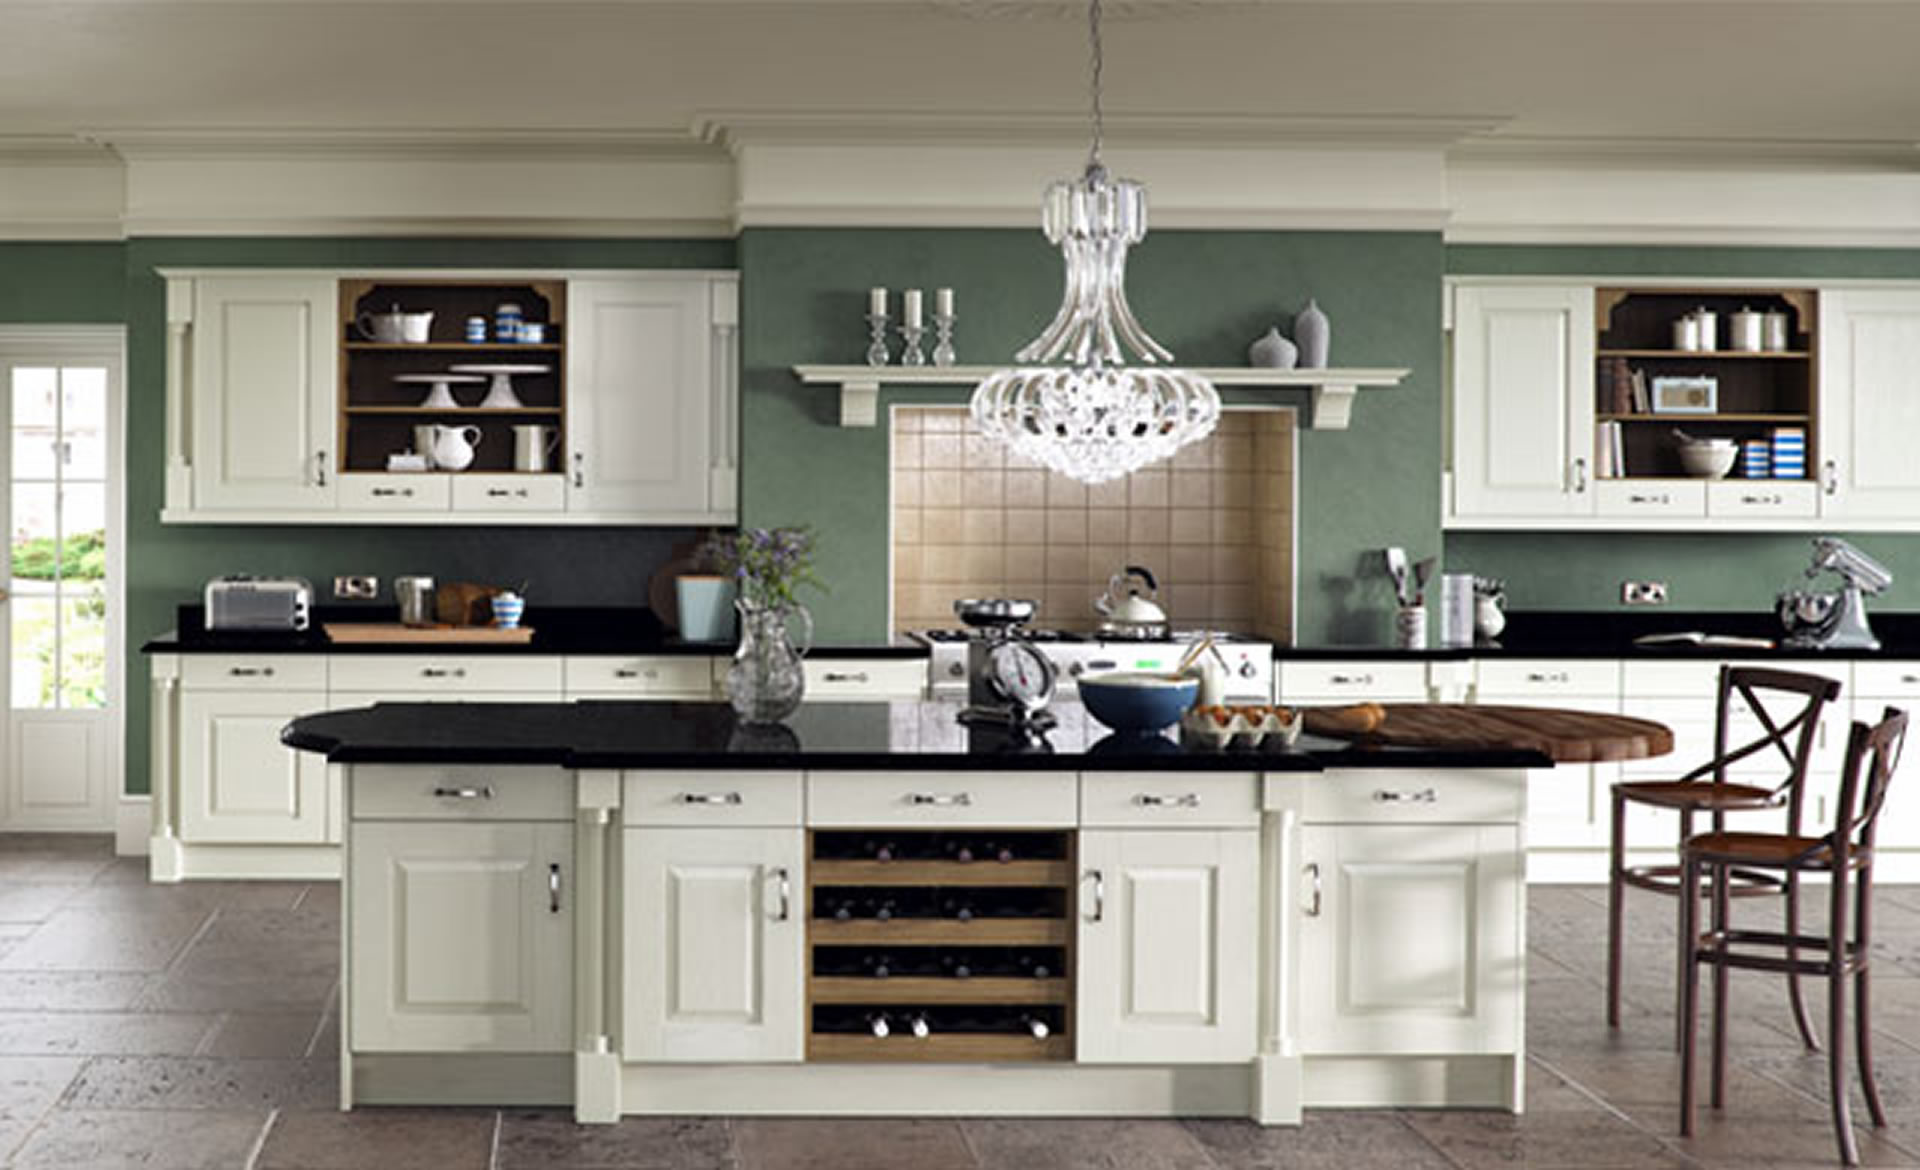 Kitchen designs winsdor classic ivory - Images of kitchens ...